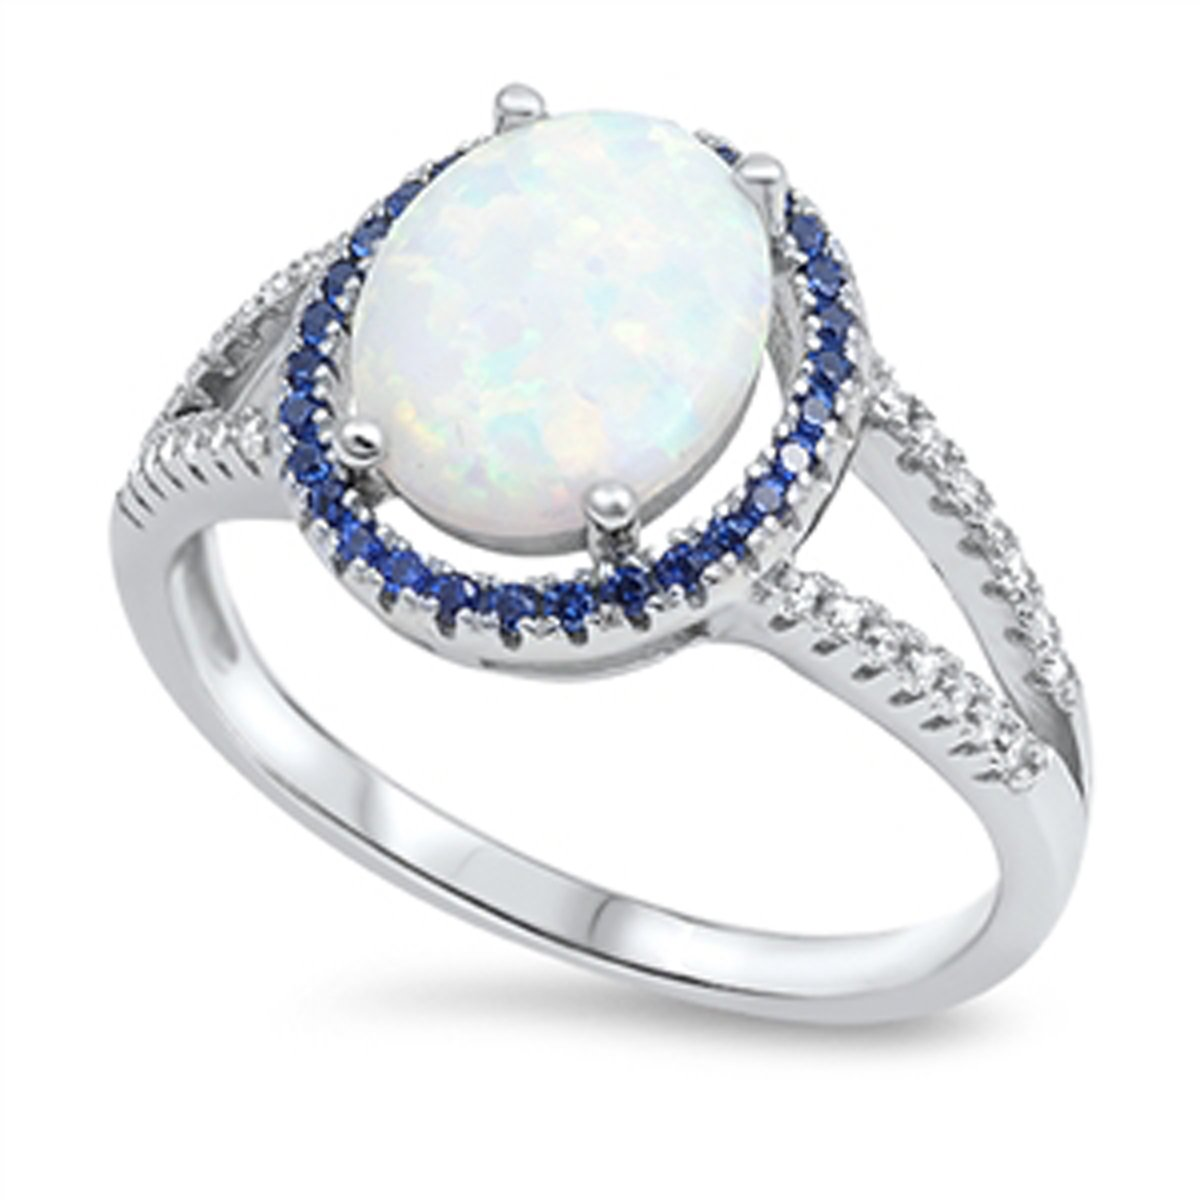 Sizes 5-10 Prime Jewelry Collection Sterling Silver Womens Blue Cubic Zirconia White Lab Opal Solitaire Halo Wedding Ring